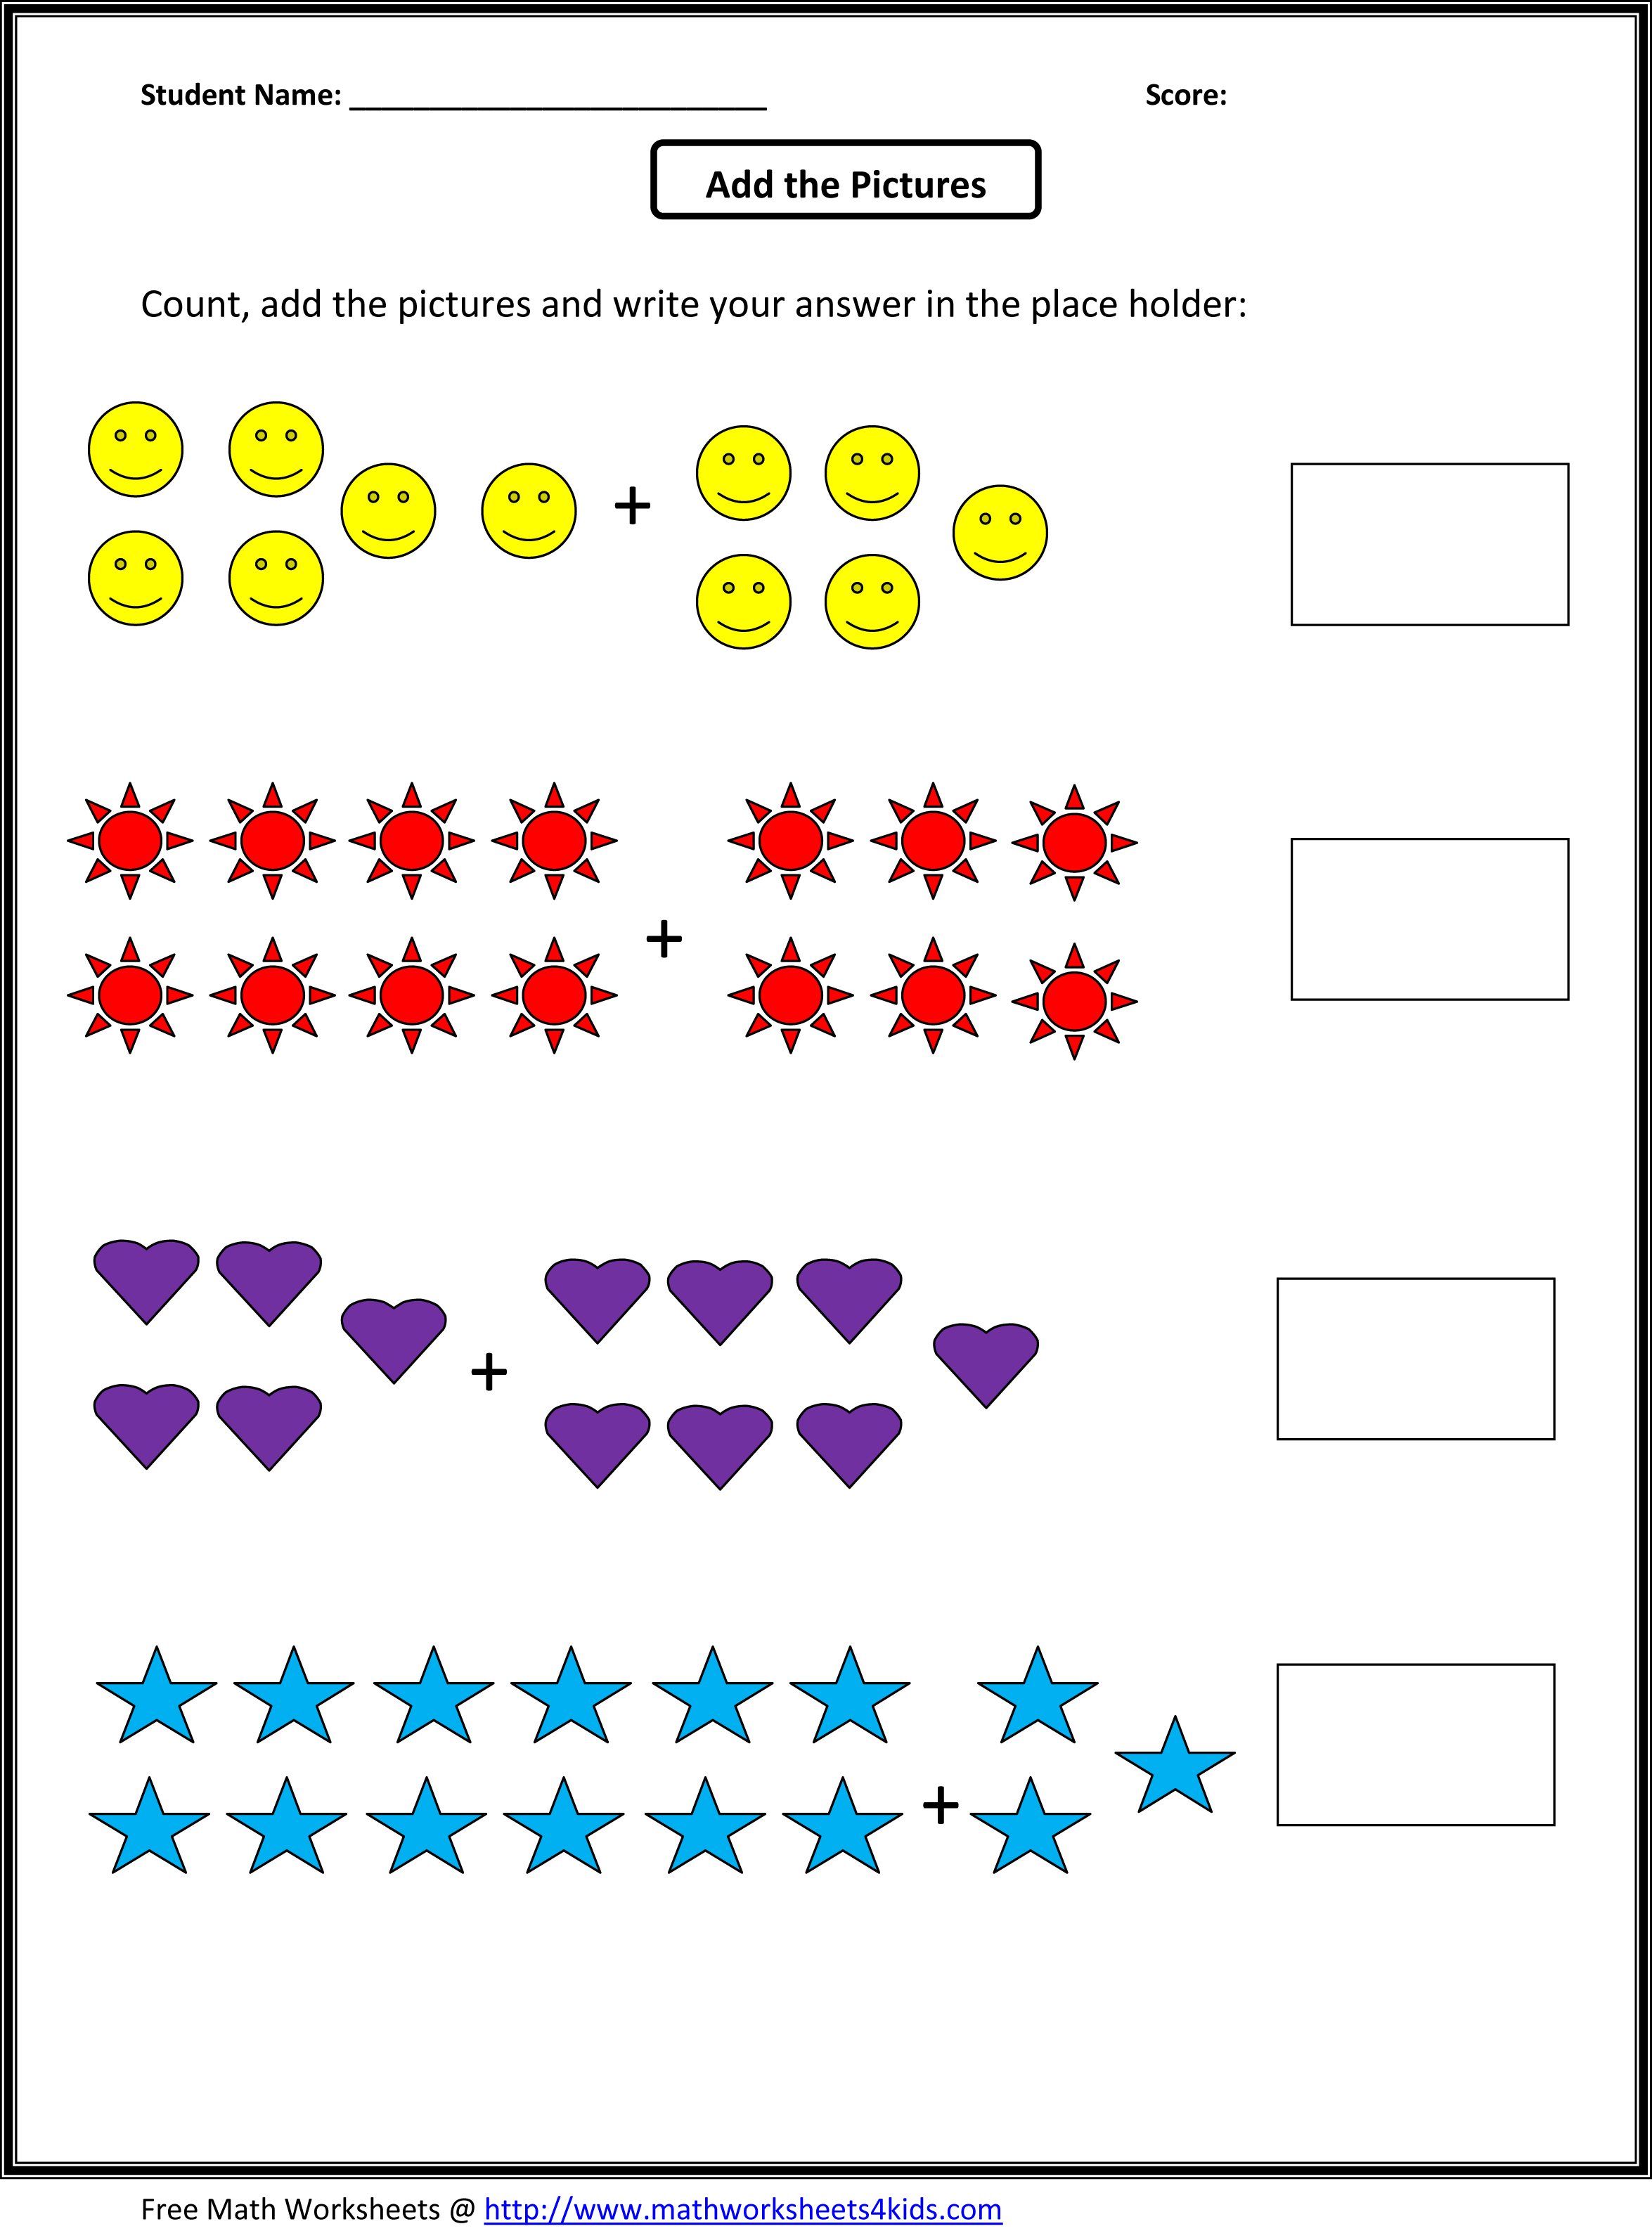 Weirdmailus  Terrific Grade  Maths Worksheet  Reocurent With Excellent Math Worksheets For St Grade Free  Reocurent With Cool Pronoun Worksheets For Grade  Also Worksheets On Prepositions For Grade  In Addition Learn To Write Numbers Printable Worksheets And Numeracy Worksheet As Well As Plurals Vs Possessives Worksheets Additionally Science Worksheets For Year  From Reocurentcom With Weirdmailus  Excellent Grade  Maths Worksheet  Reocurent With Cool Math Worksheets For St Grade Free  Reocurent And Terrific Pronoun Worksheets For Grade  Also Worksheets On Prepositions For Grade  In Addition Learn To Write Numbers Printable Worksheets From Reocurentcom